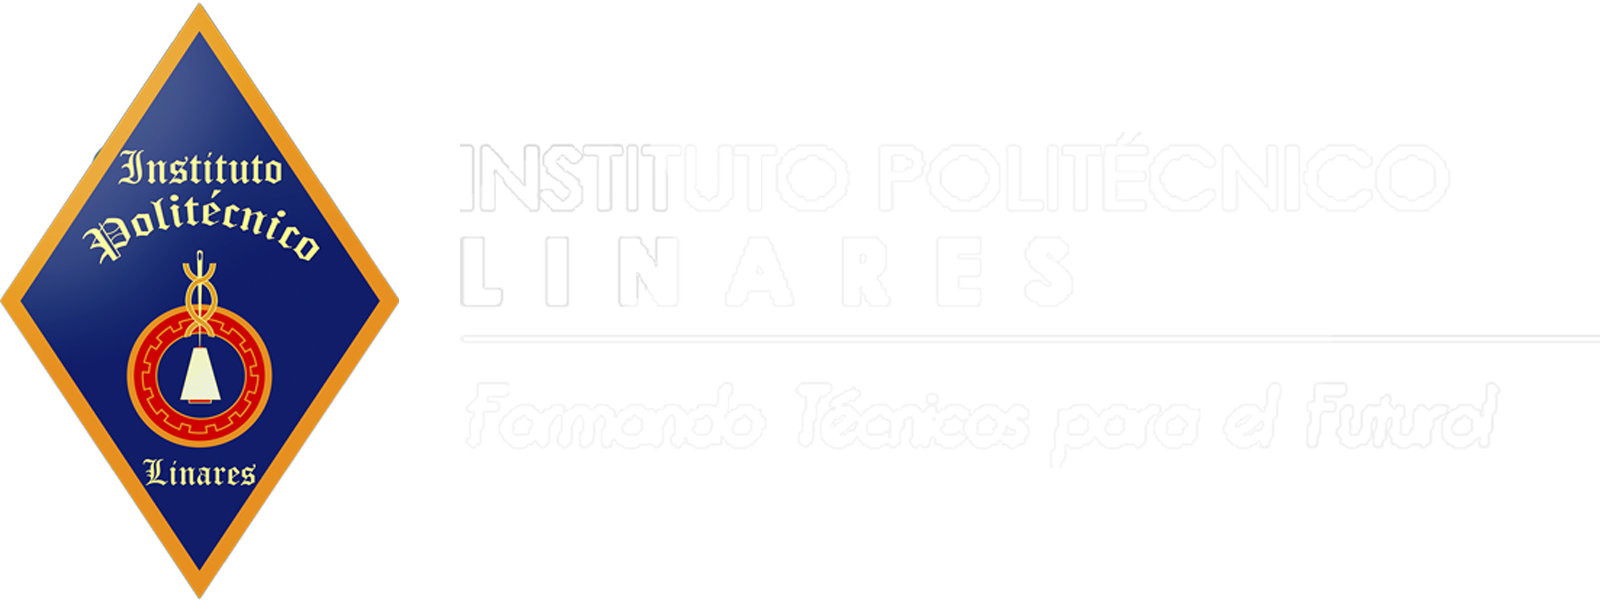 Instituto Politécnico